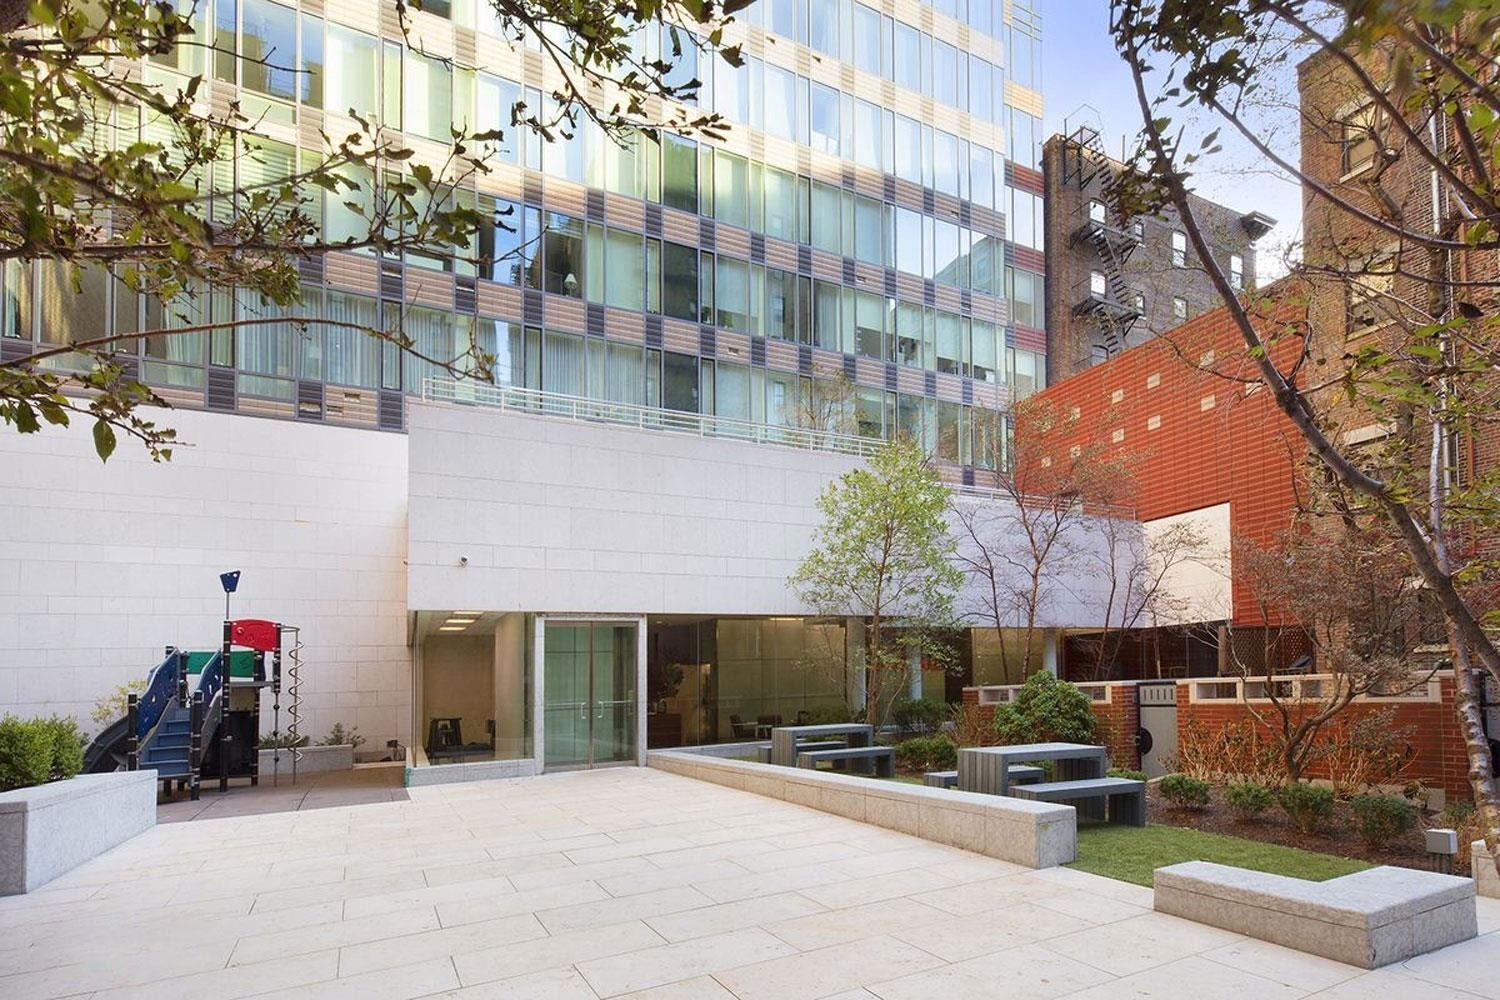 6. ARIEL WEST bâtiment à 245 West 99th St, Upper Manhattan, New York, NY